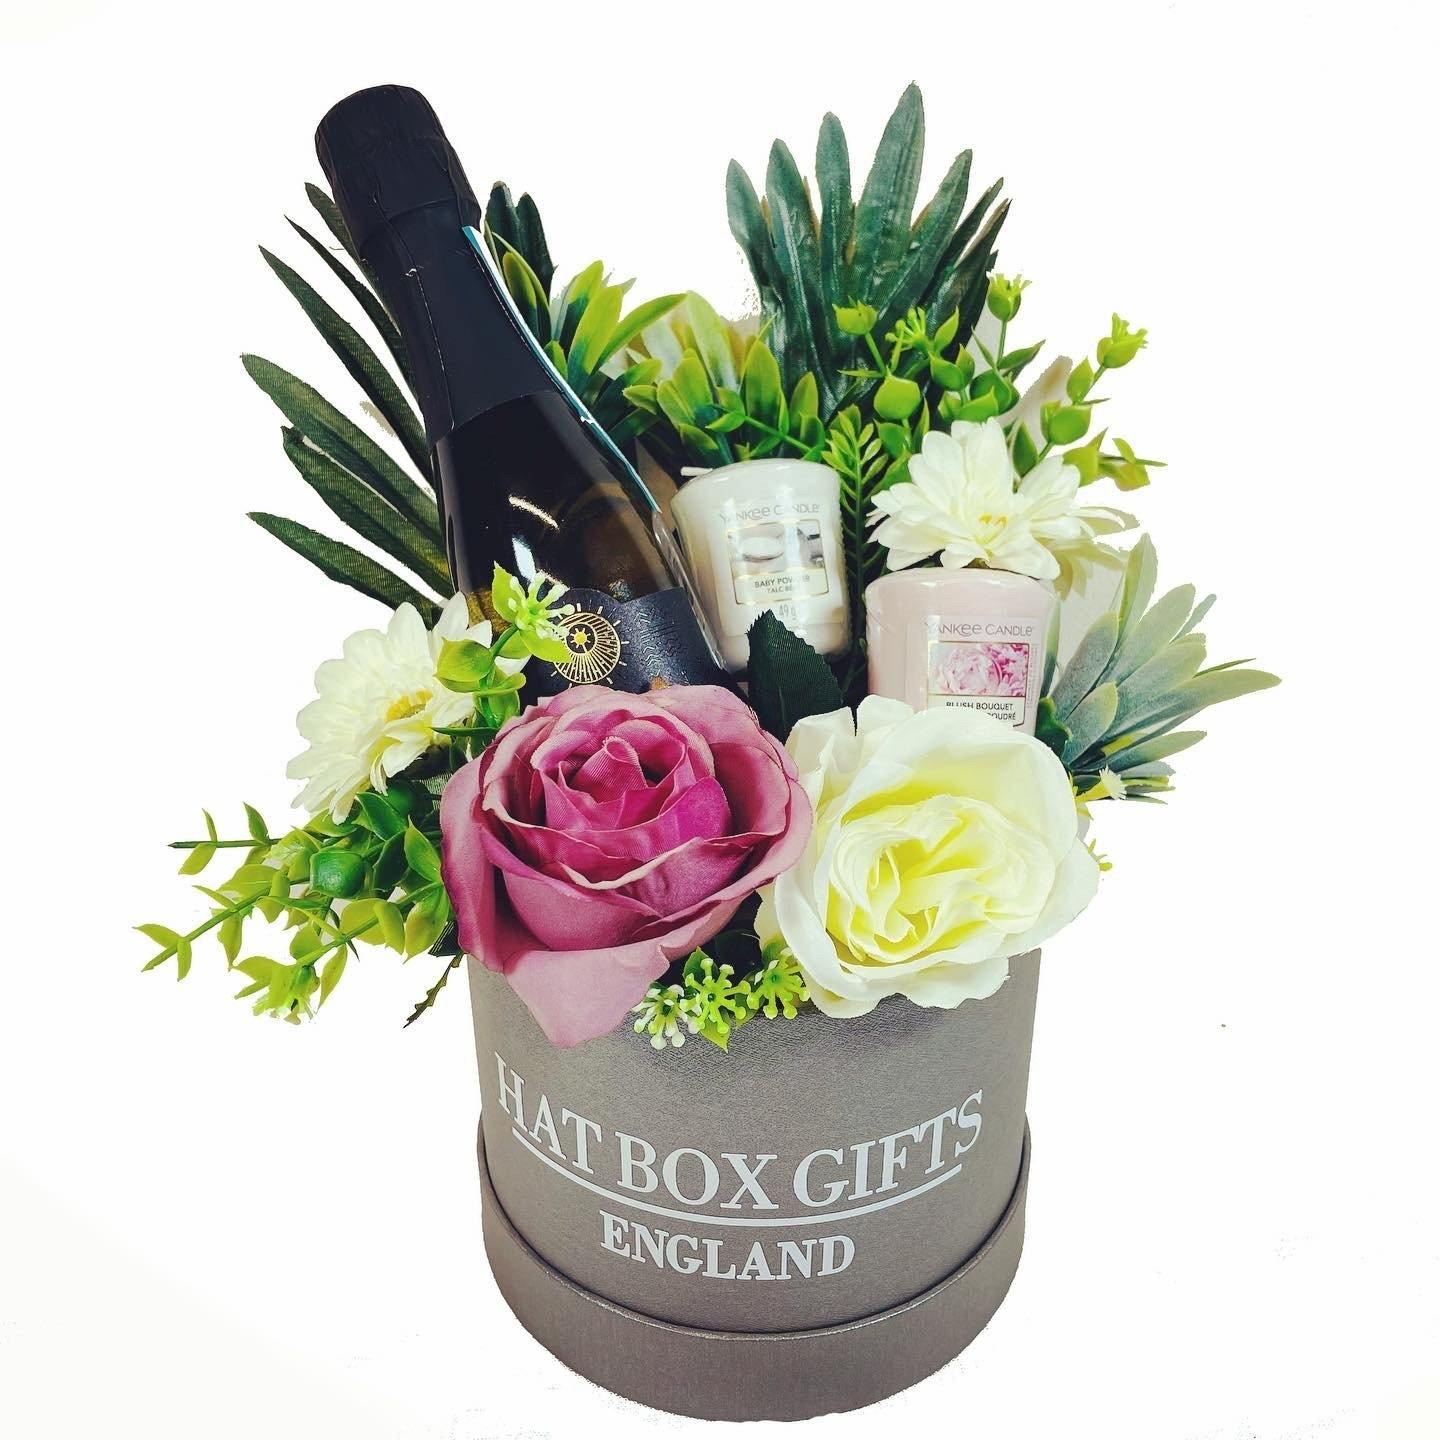 Hat Box with Yankee Candles, Prosecco & Flowers